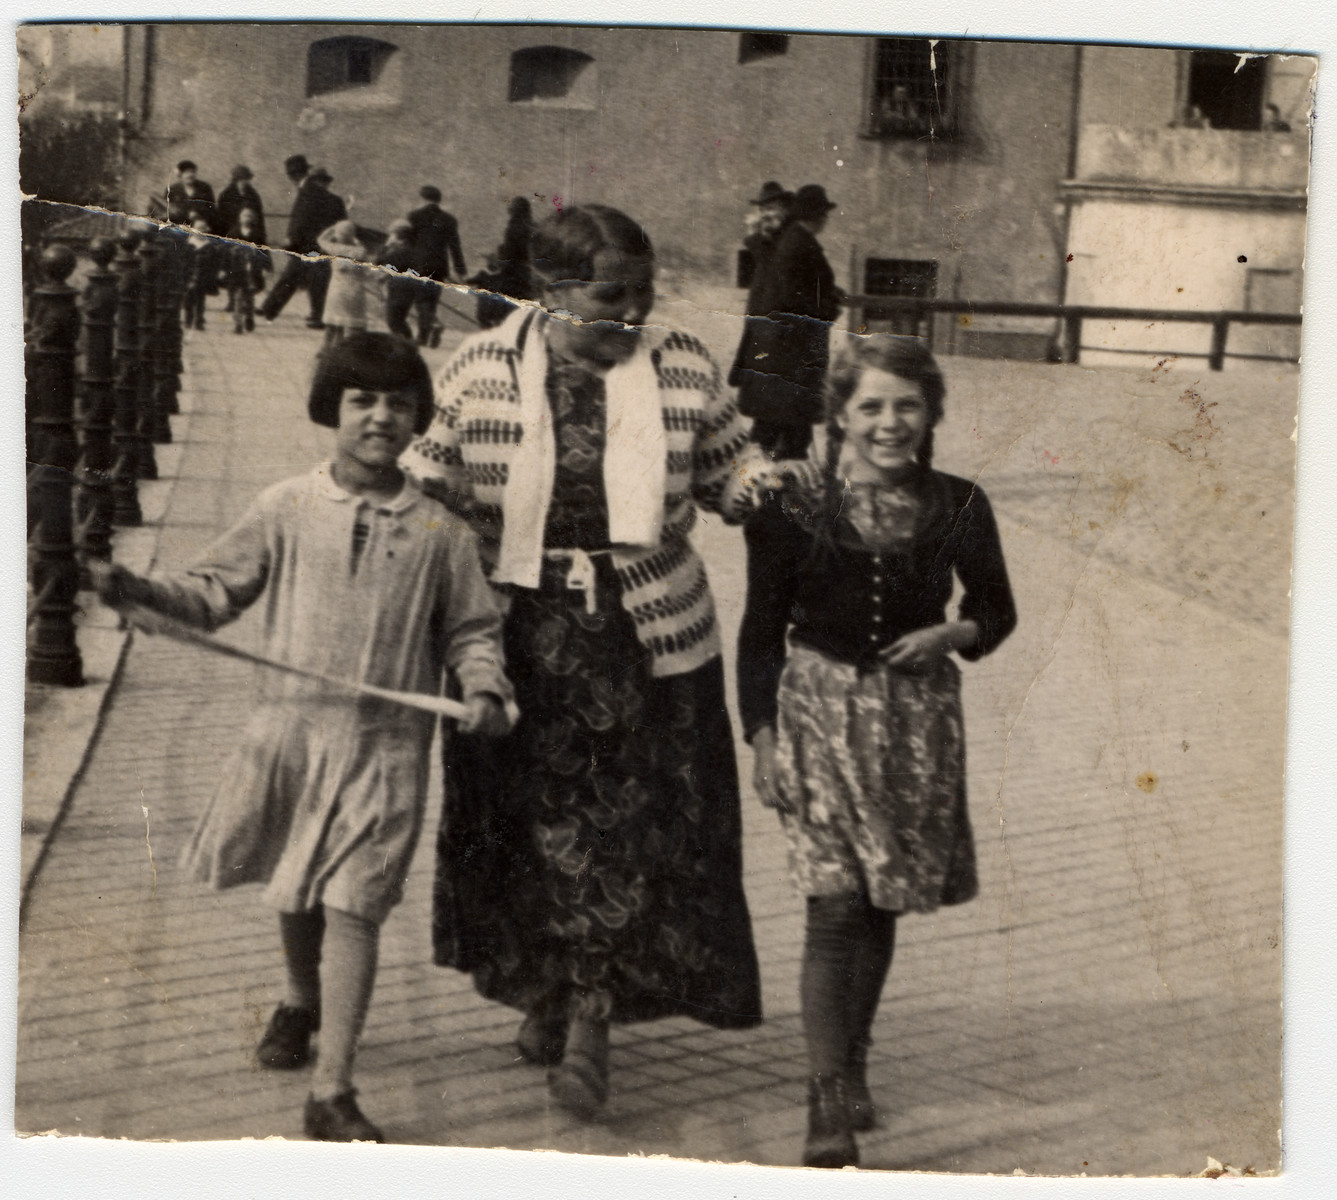 An elderly Romani woman walks down a street accompanied by two girls.   Pictured is donor's mother Theresia Seible (on the right) with her grandmother and her cousin.